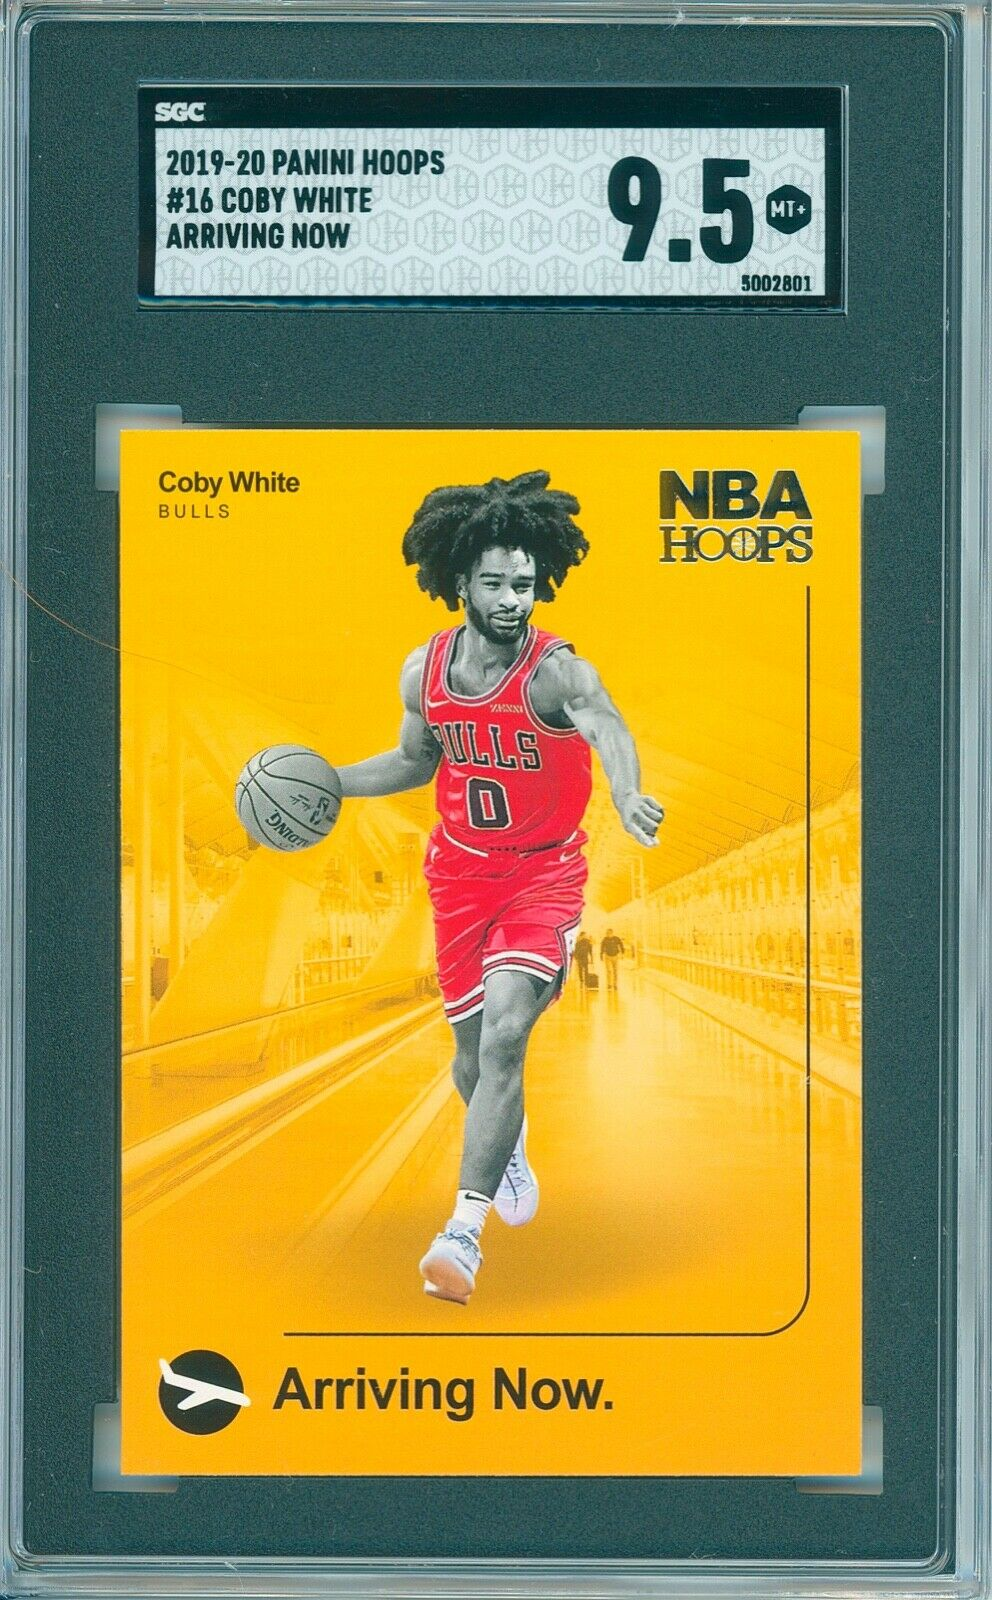 COBY WHITE 2019-20 PANINI HOOPS 16 ARRIVING NOW SGC 9. MINT COMP PSA/BGS 01 - $1.25